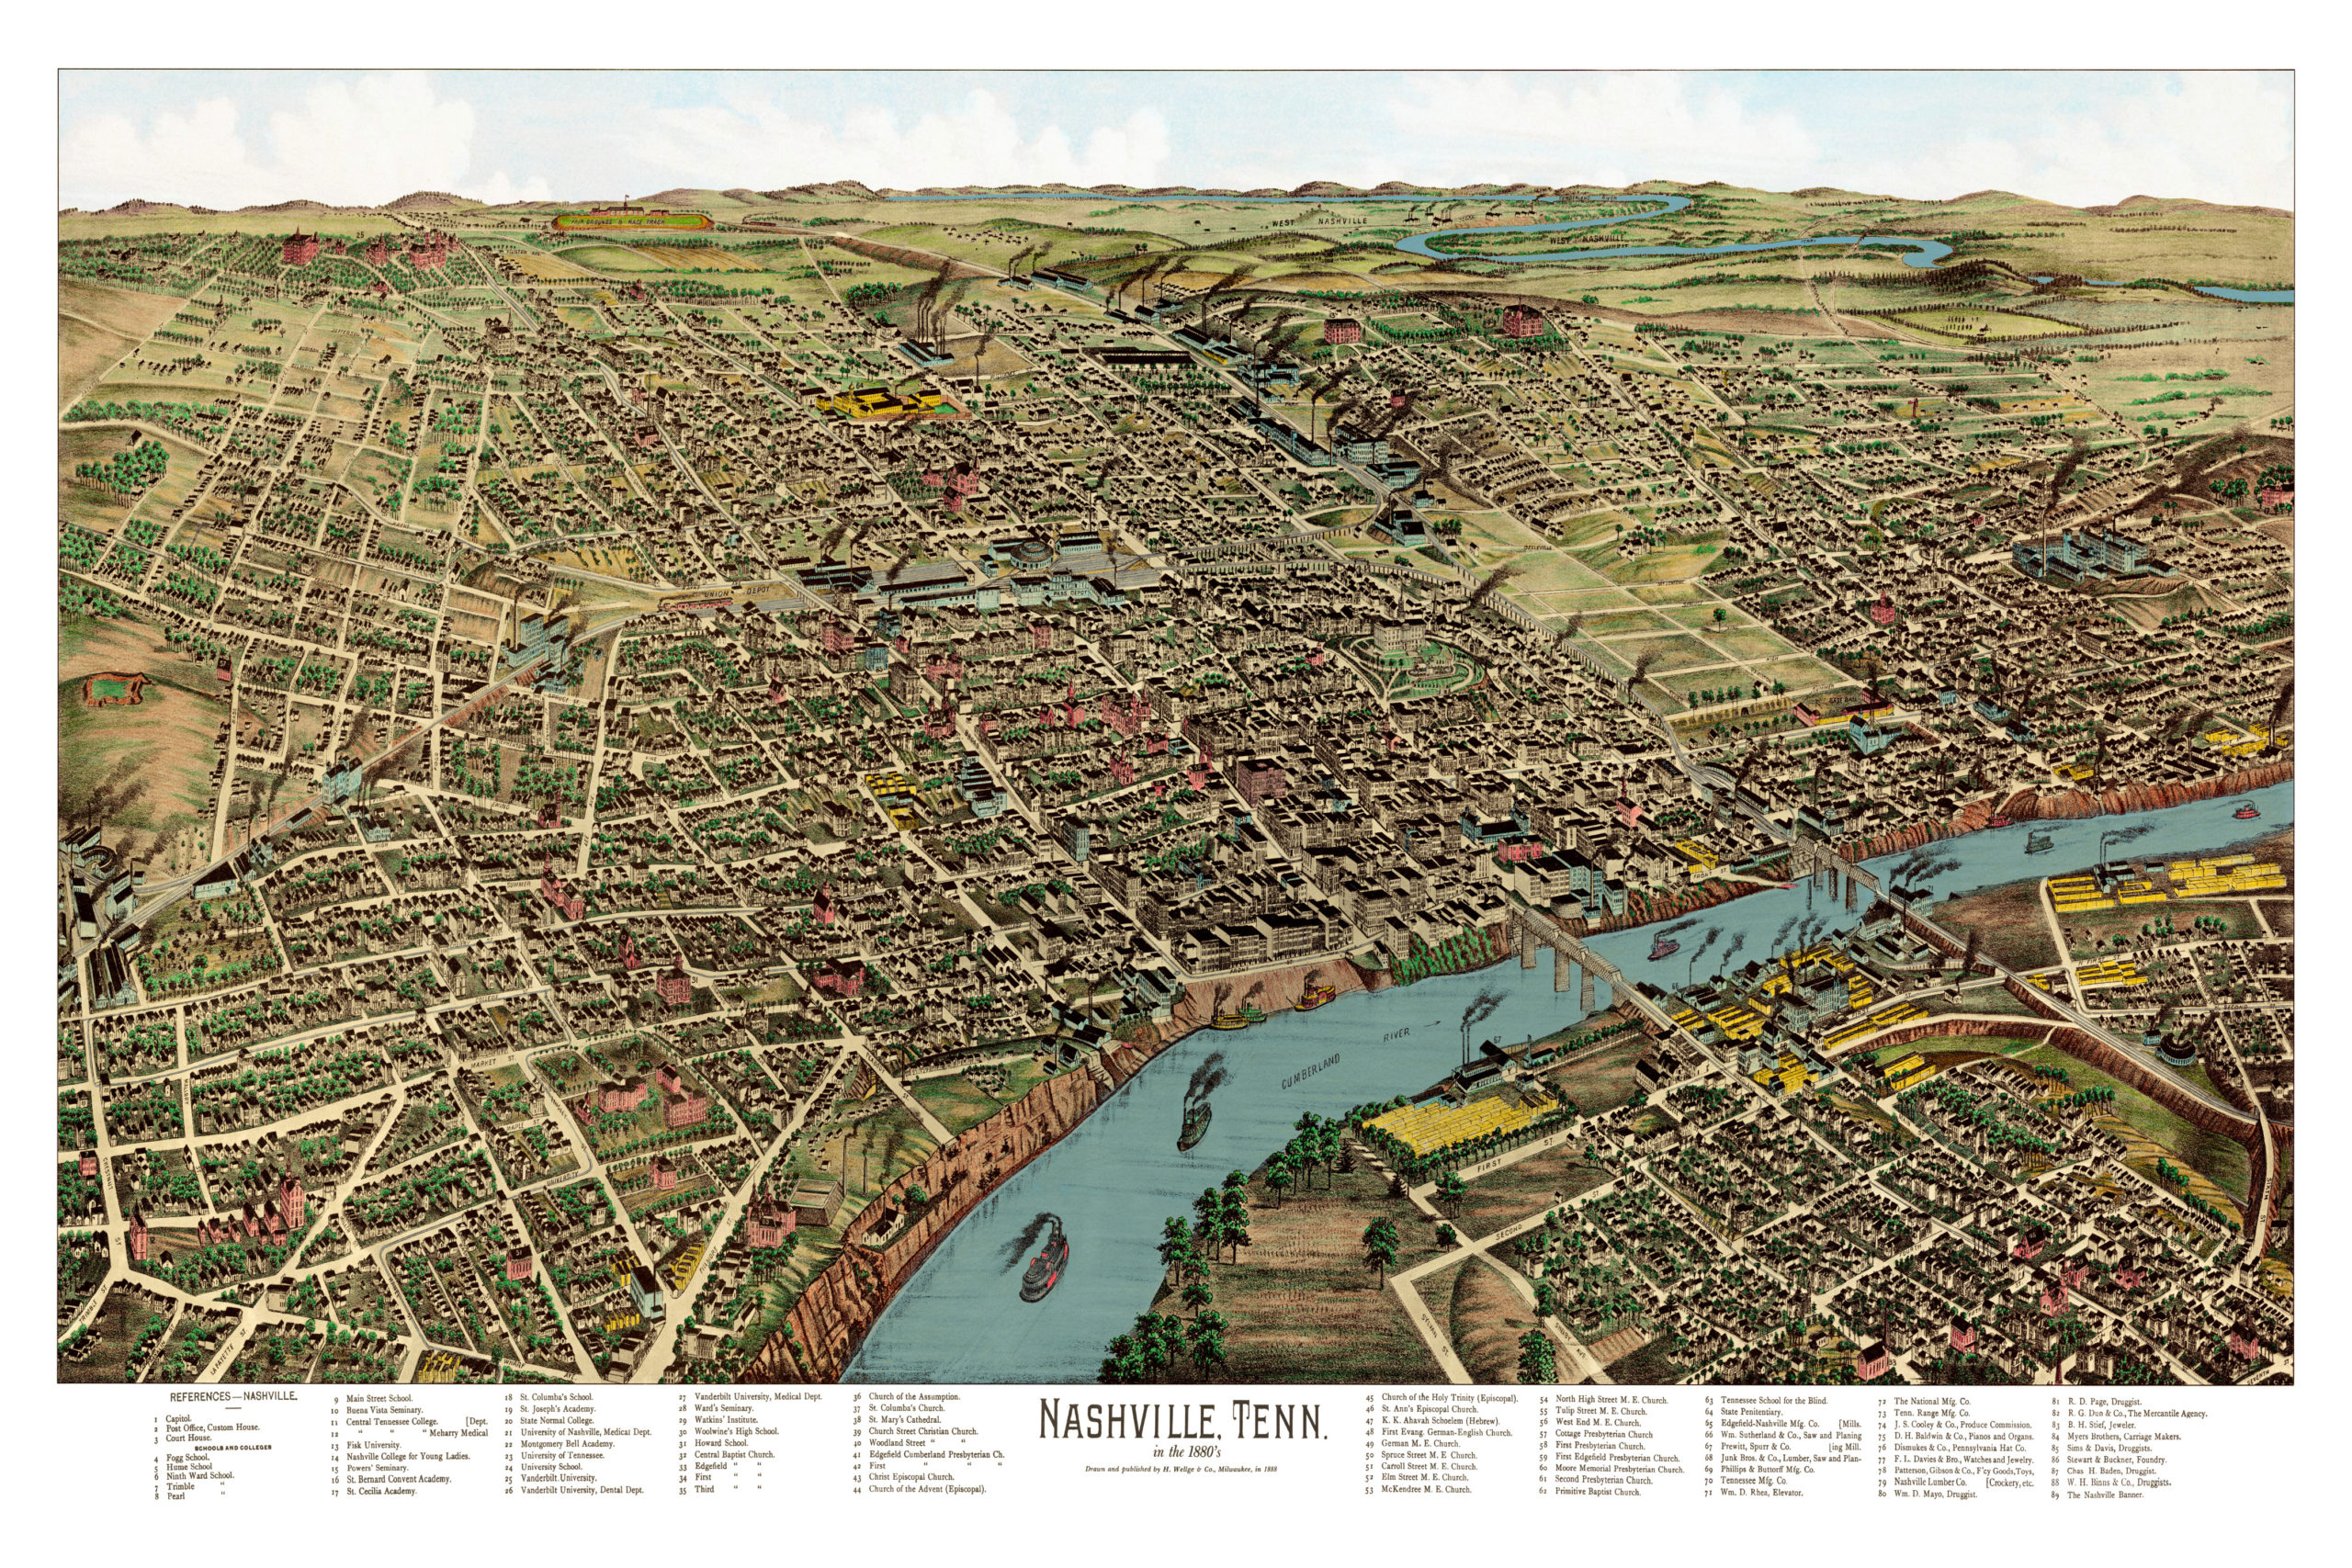 this vintage map will make an attractive addition to your home or office and can even be used to teach children the geography and history of nashville